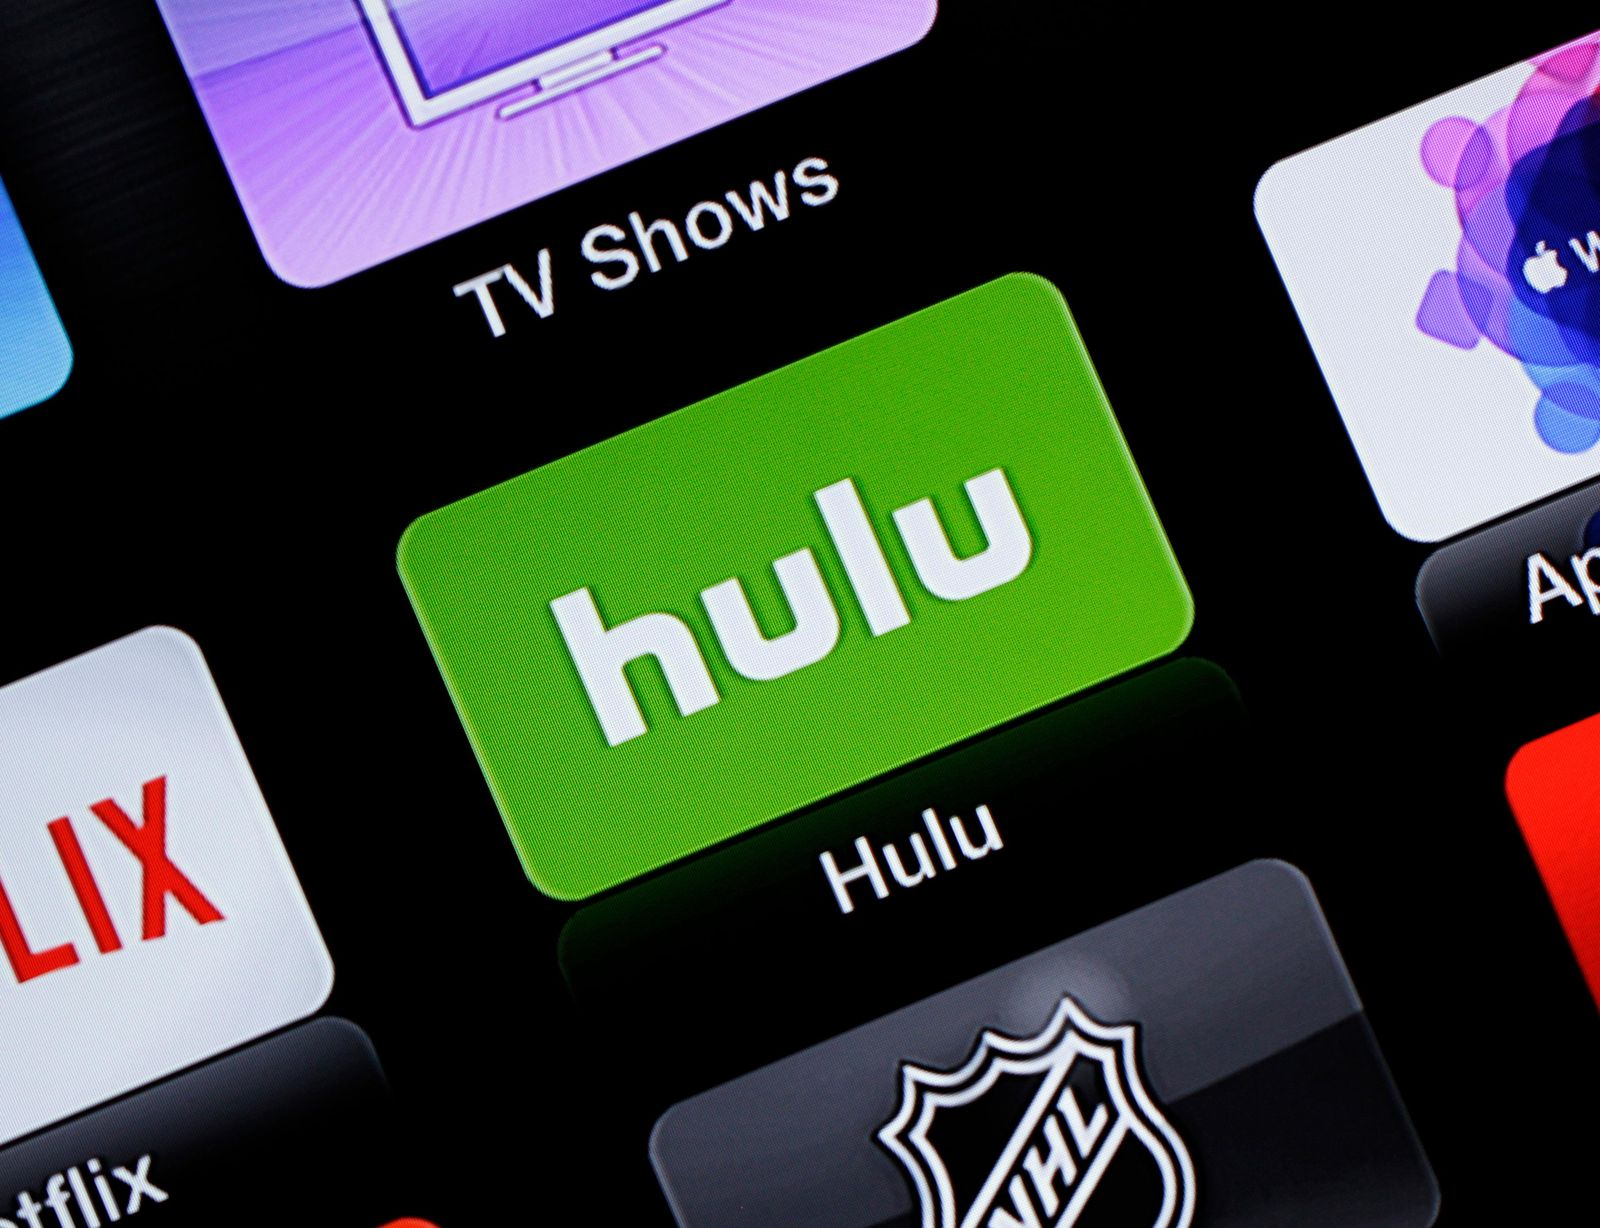 FILE- This June 24, 2015, file photo shows the Hulu Apple TV app icon in South Orange, N.J. Hulu's live-TV streaming service will cost $5 more per month, while its traditional video-on-demand service will be $2 cheaper. (AP Photo/Dan Goodman, File)